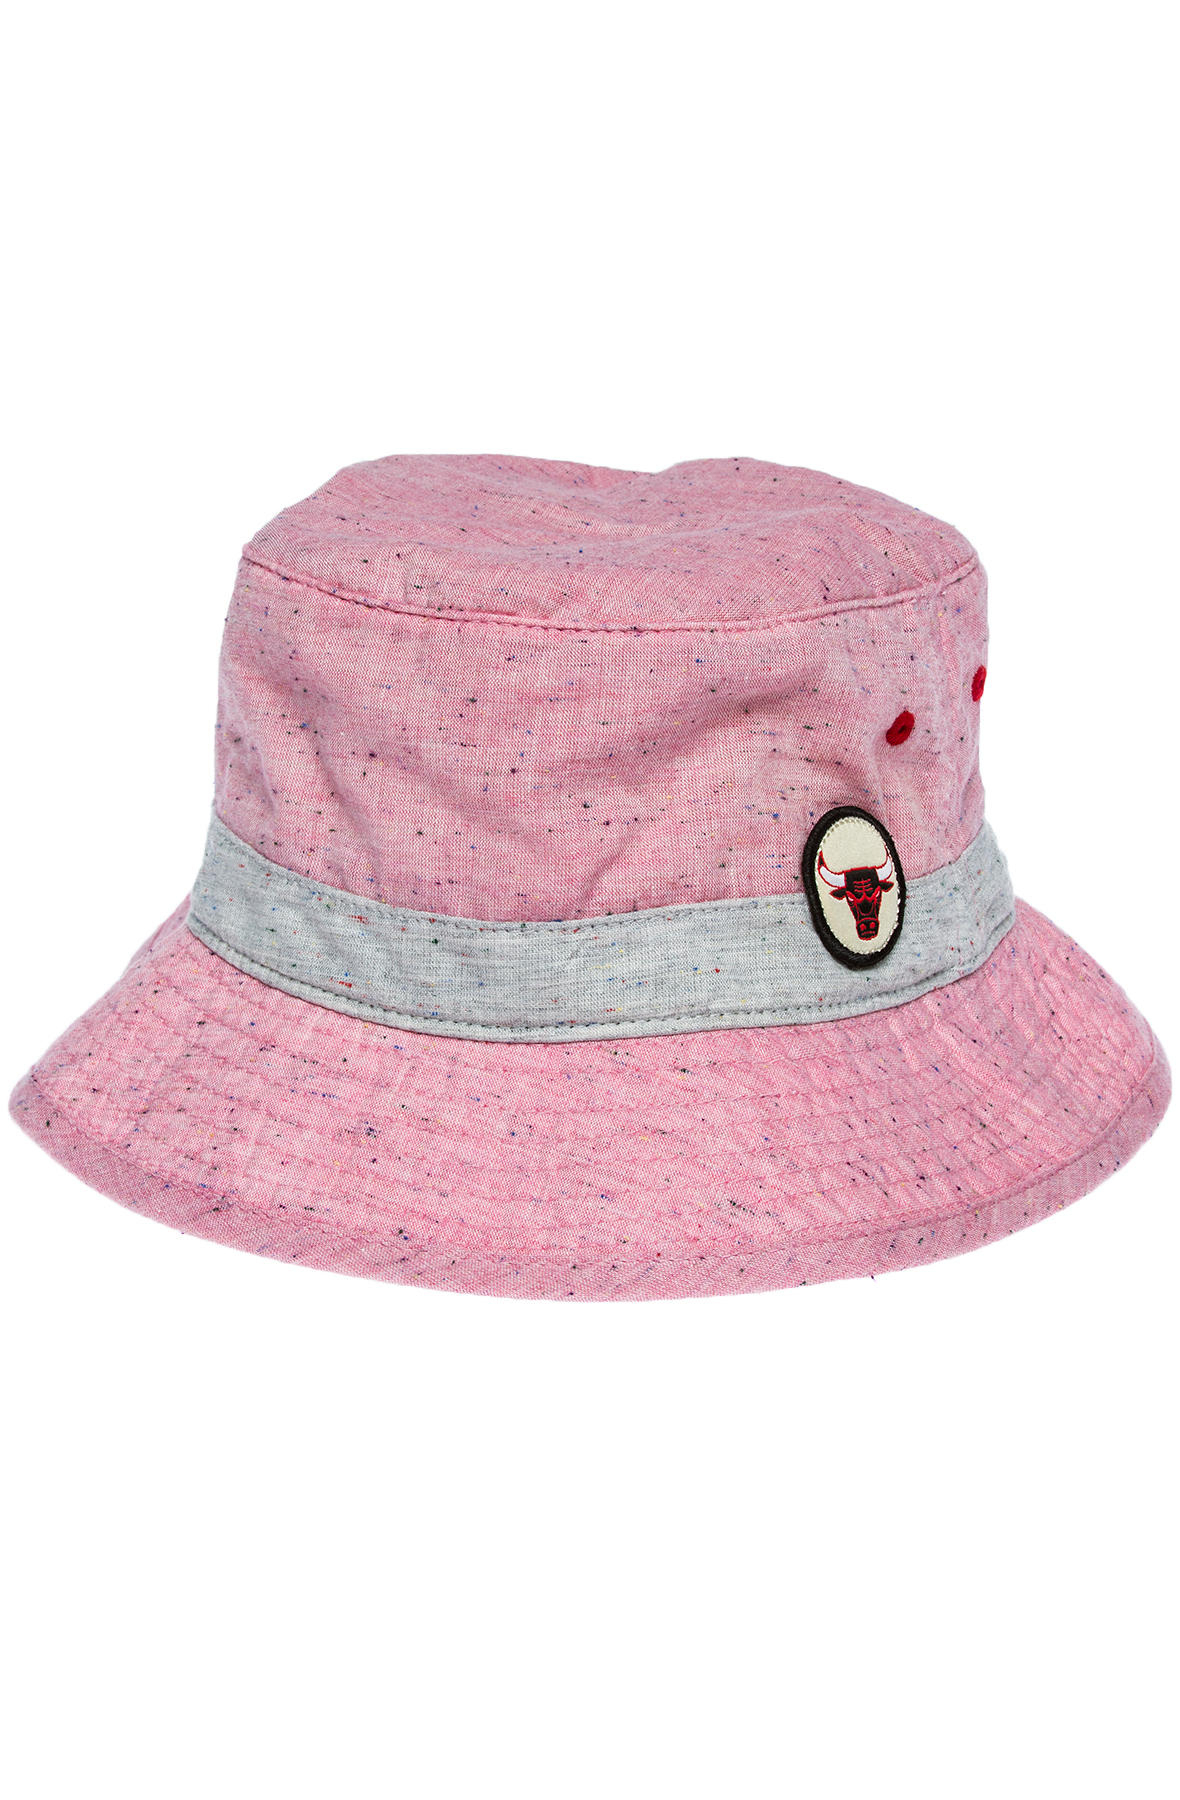 fdc91019d6a Lyst - Mitchell   Ness The Chicago Bulls Bucket Hat in Pink for Men